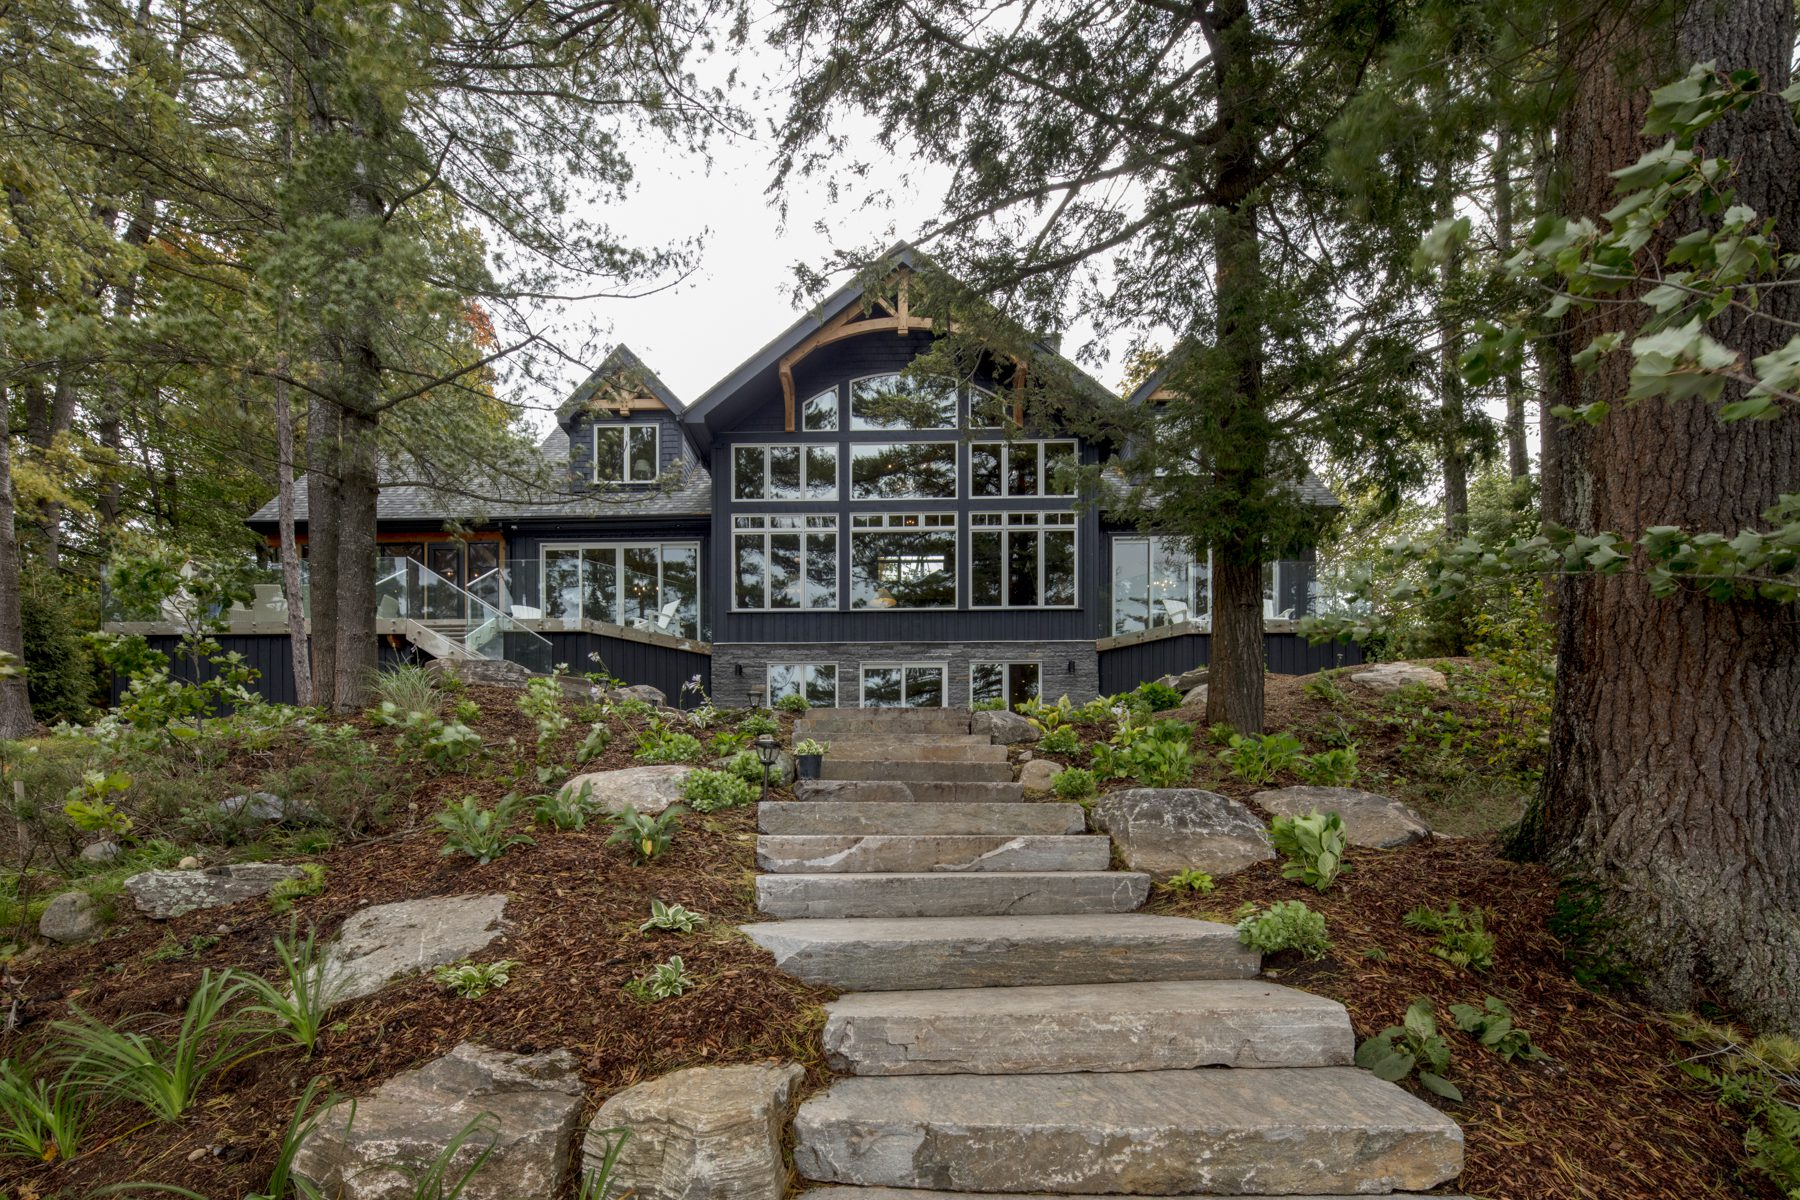 Normerica Timber Frame, Exterior, Cottage, Lake View, Rear View